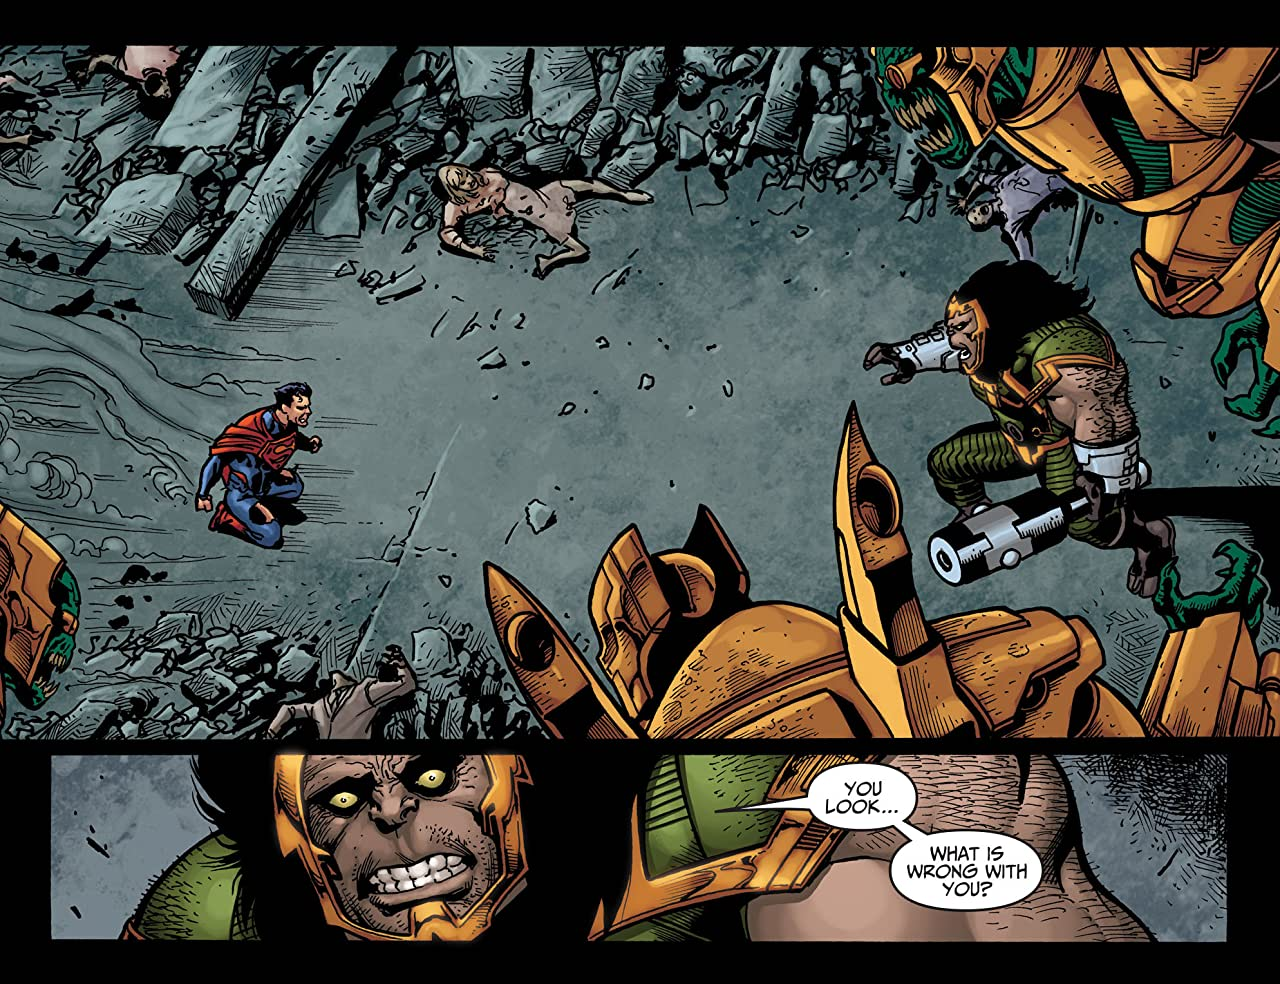 Injustice: Gods Among Us (2013) #23